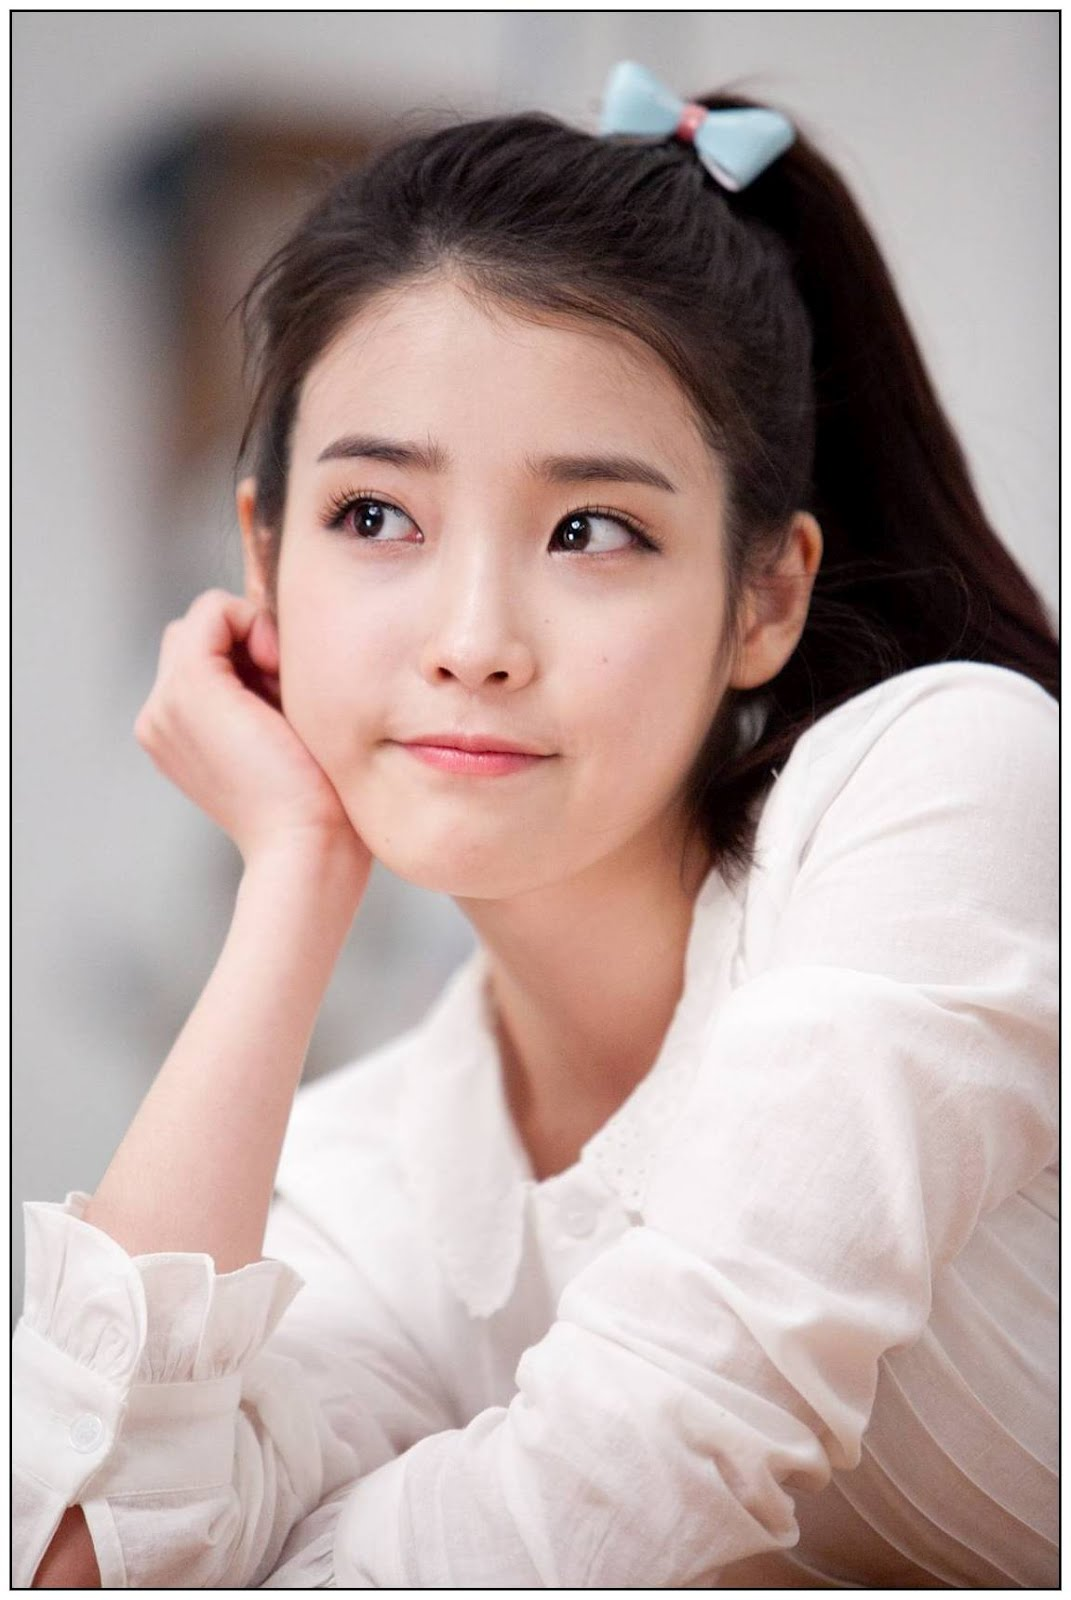 iu korean dating Singer iu has been dating jang ki-ha, a singer-songwriter of an indie band, her agency said in a press release last week they first met two years ago and have become romantically involved since then iu also added she first met jang at a radio program jang hosted, and she had a crush on him at.